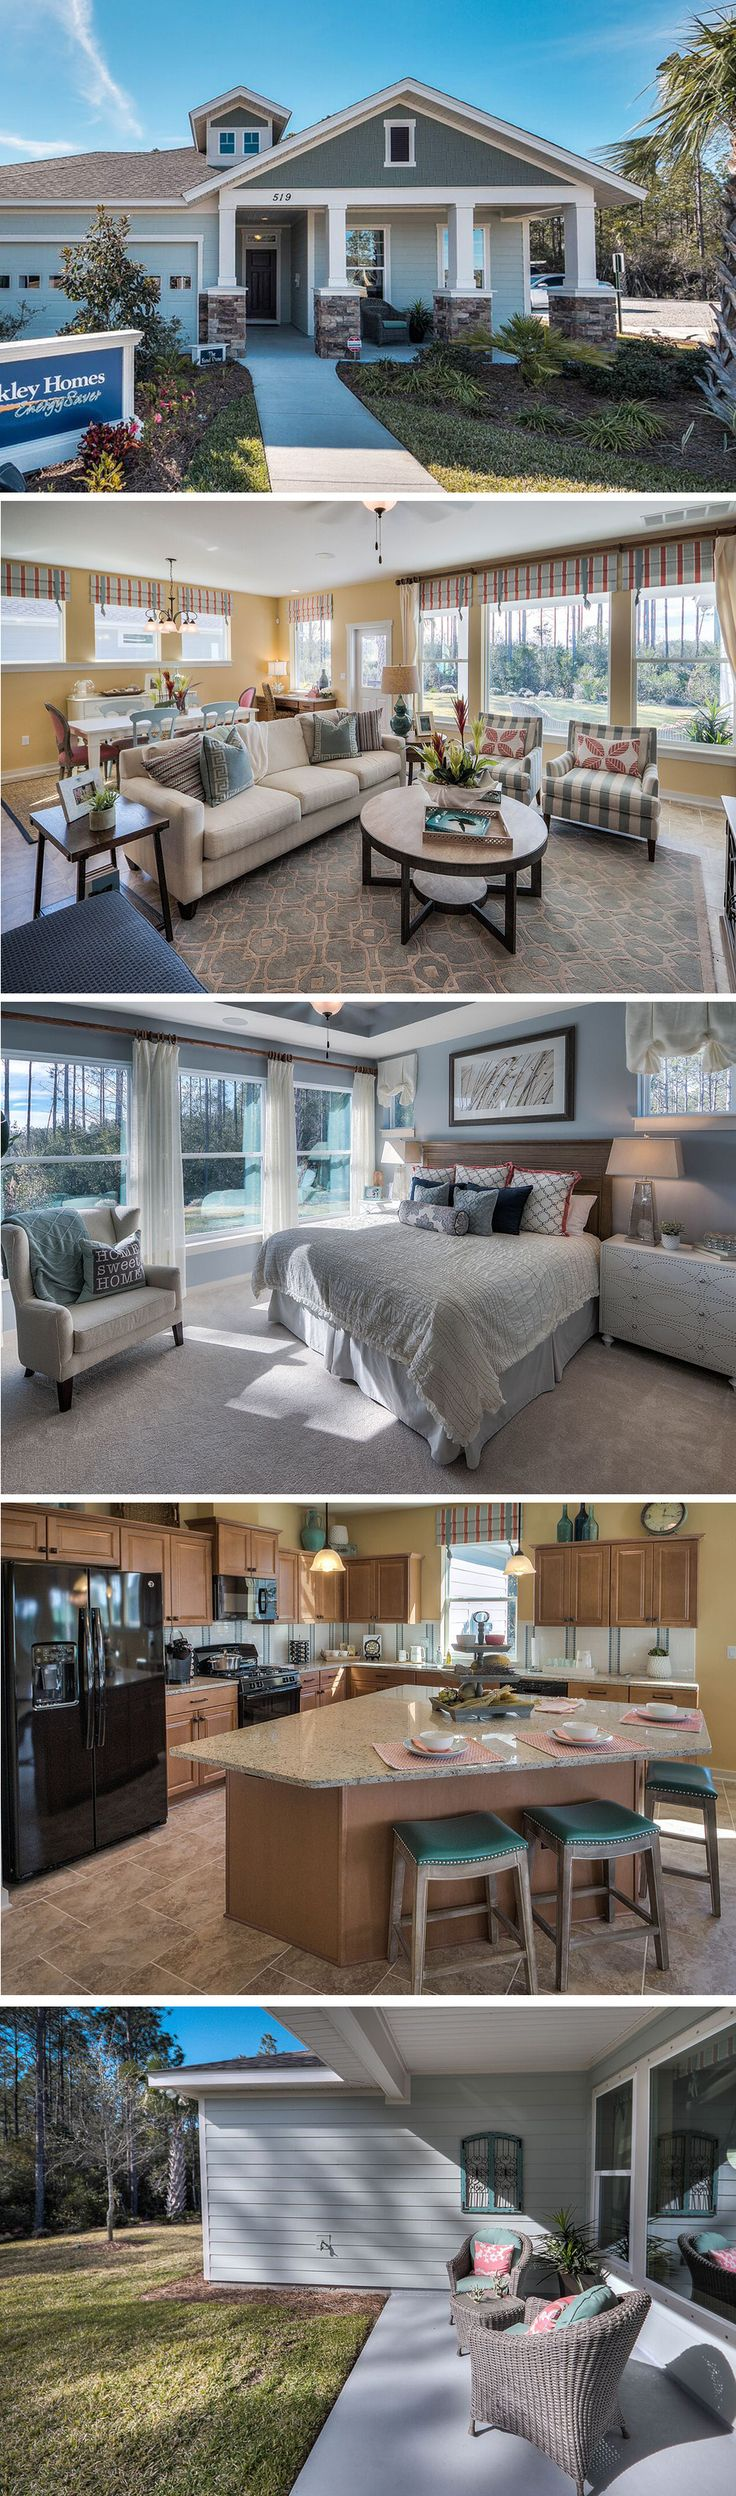 The Sand Dune by David Weekley Homes in Breakfast Point is a 3 bedroom, 2 bath floorplan that features a front porch, a lanai, and a large owners retreat. Custom home upgrades include tray ceilings in the owners retreat, an extended lanai or a change to the owners bath layout.